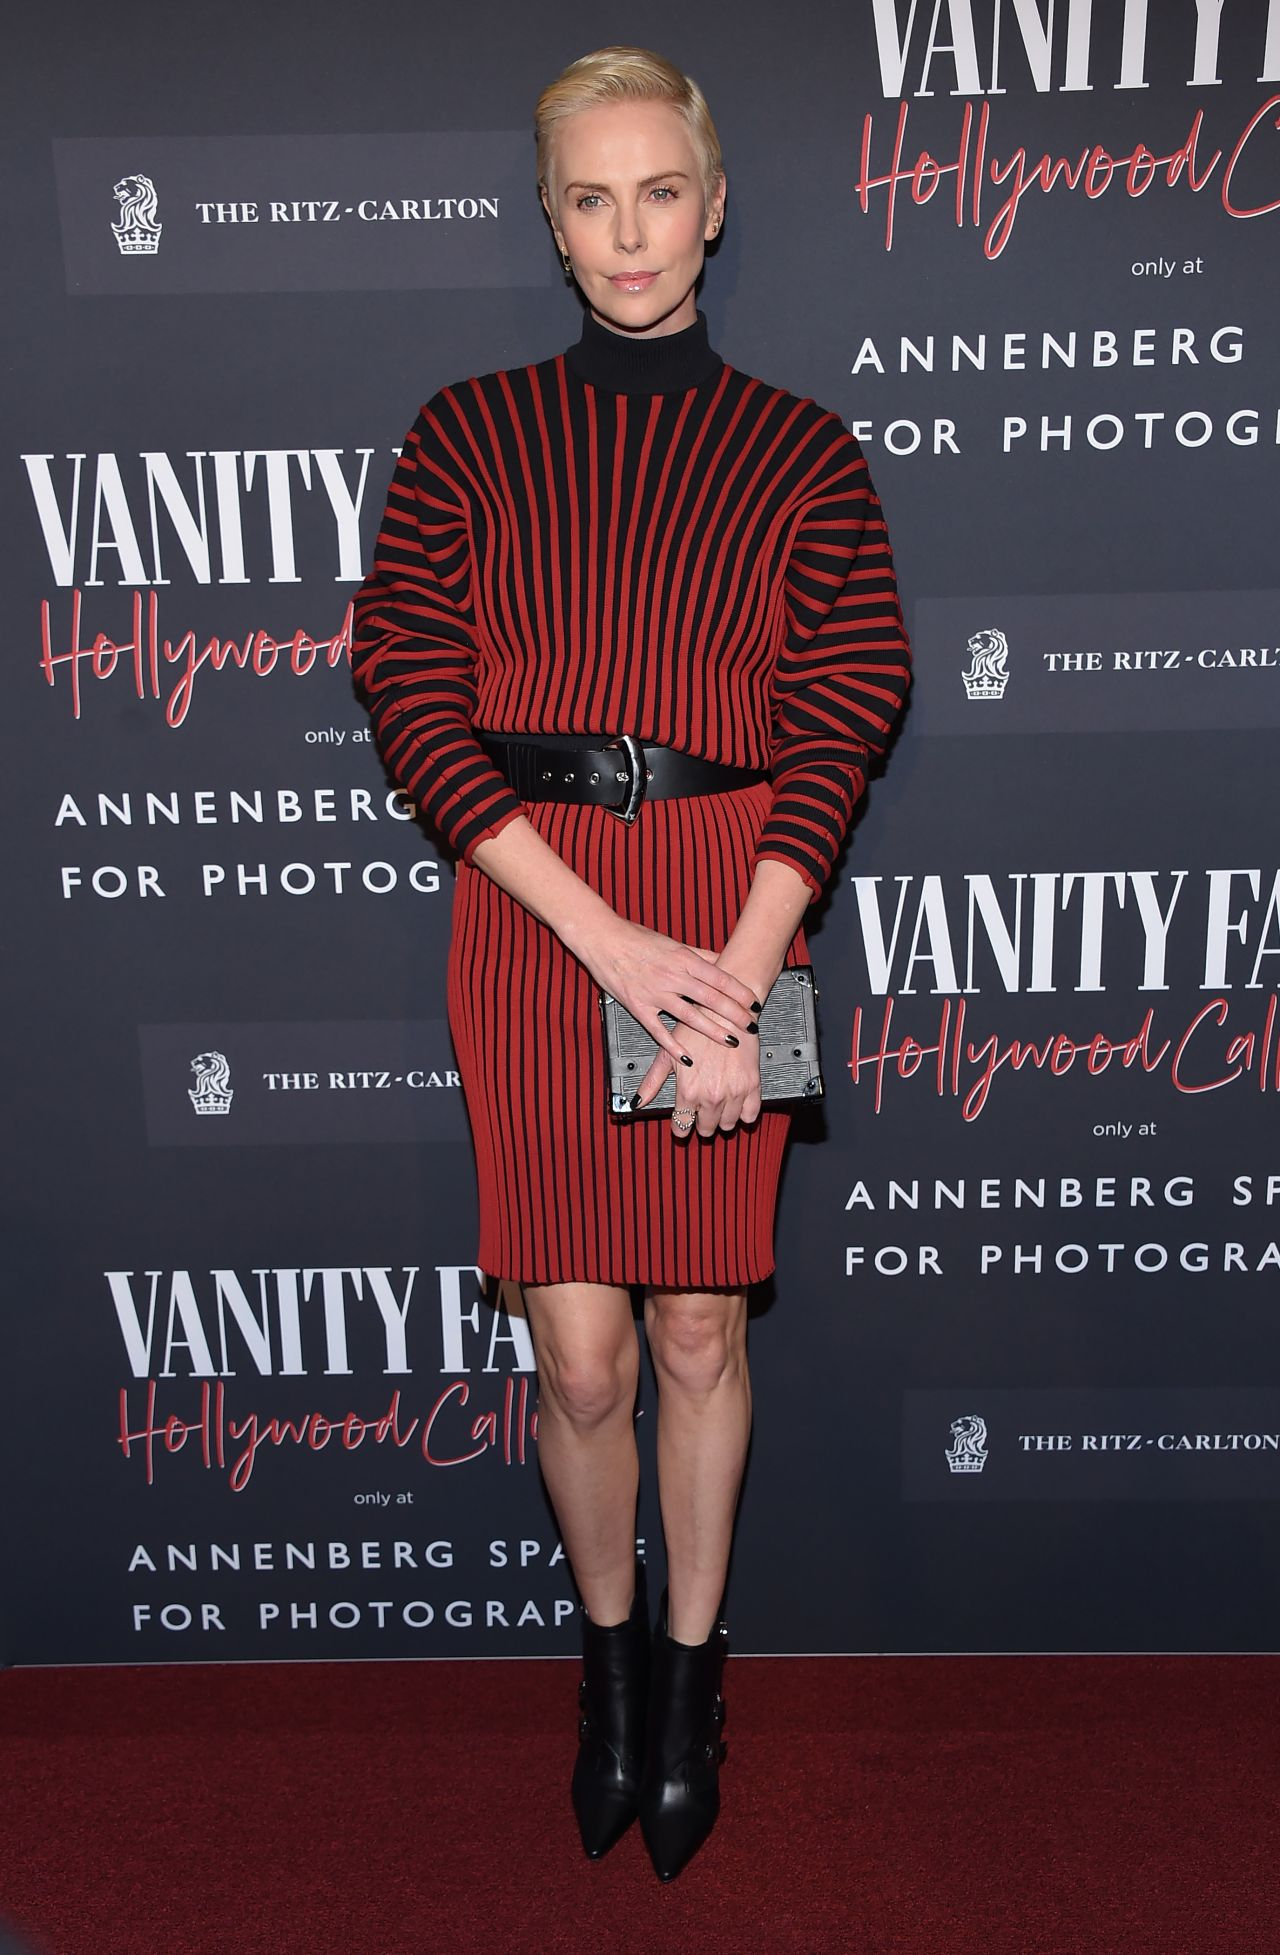 charlize-theron-vanity-fair-hollywood-calling-exhibition-la